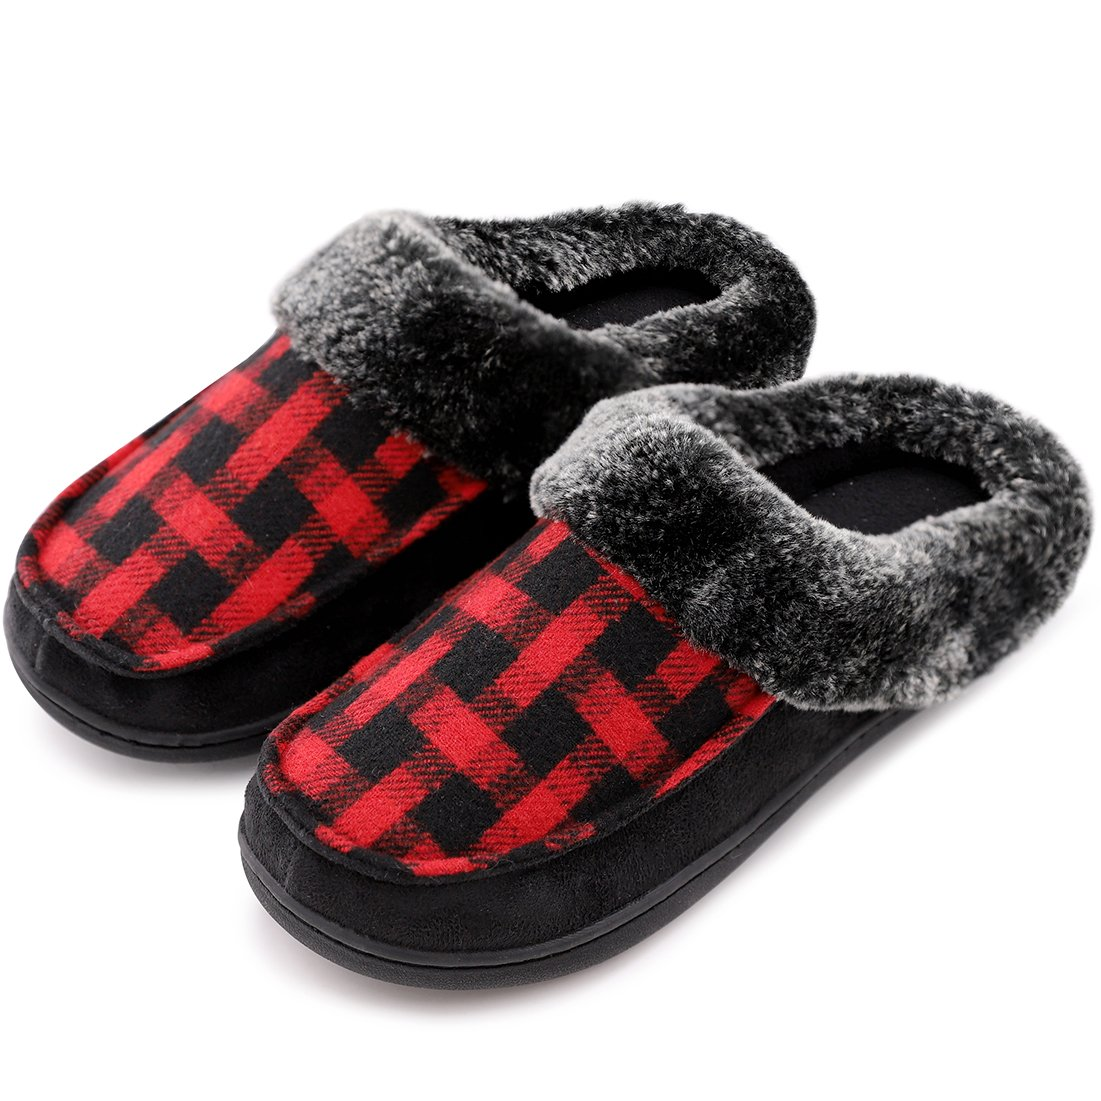 Men's & Women's Comfy Wool Plush Fleece Slip On Memory Foam Clog House Slippers w/Plaid Upper Indoor, Outdoor Sole